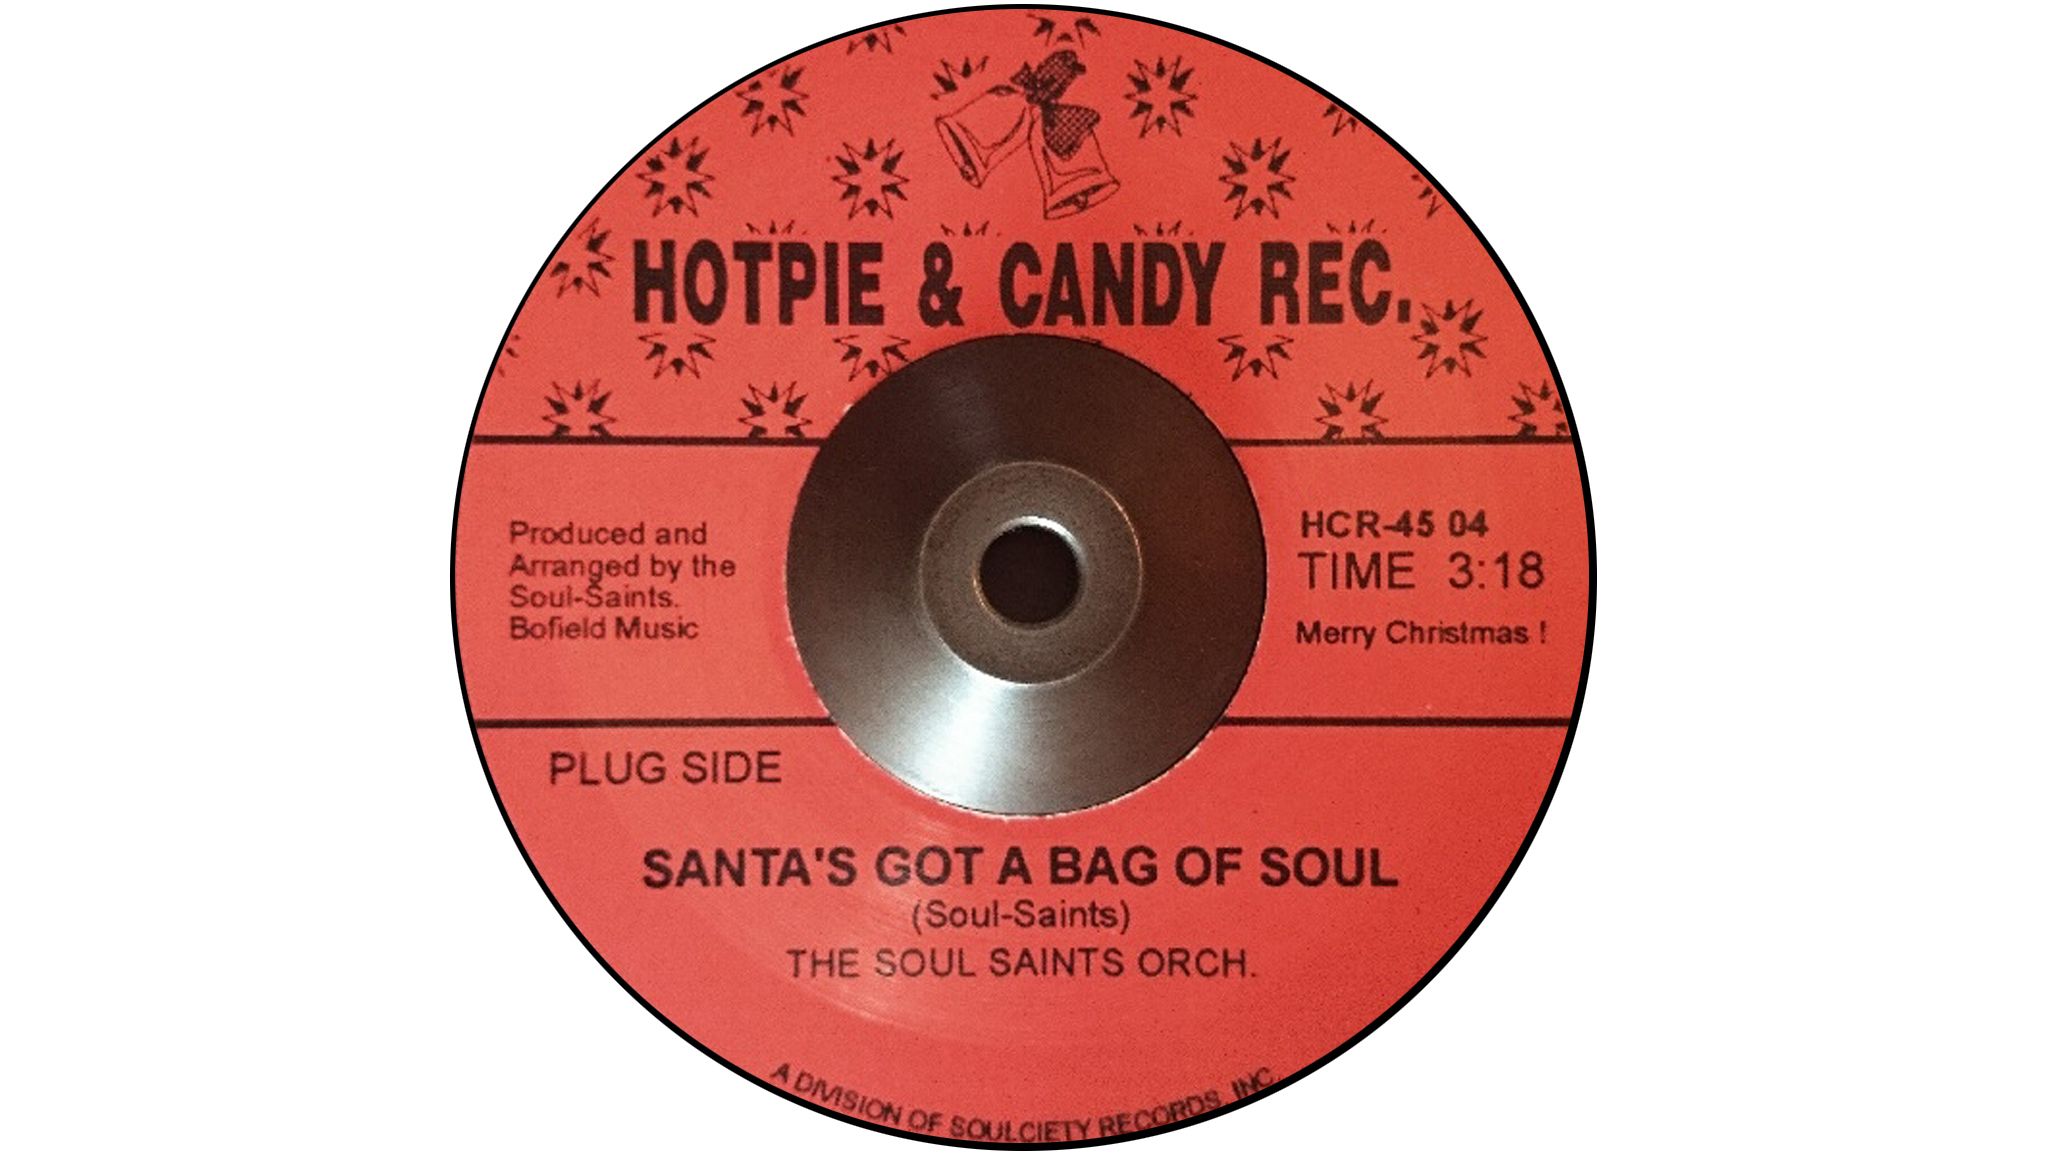 'Santa's Got A Bag Of Soul' – Soul-Saints Orchestra